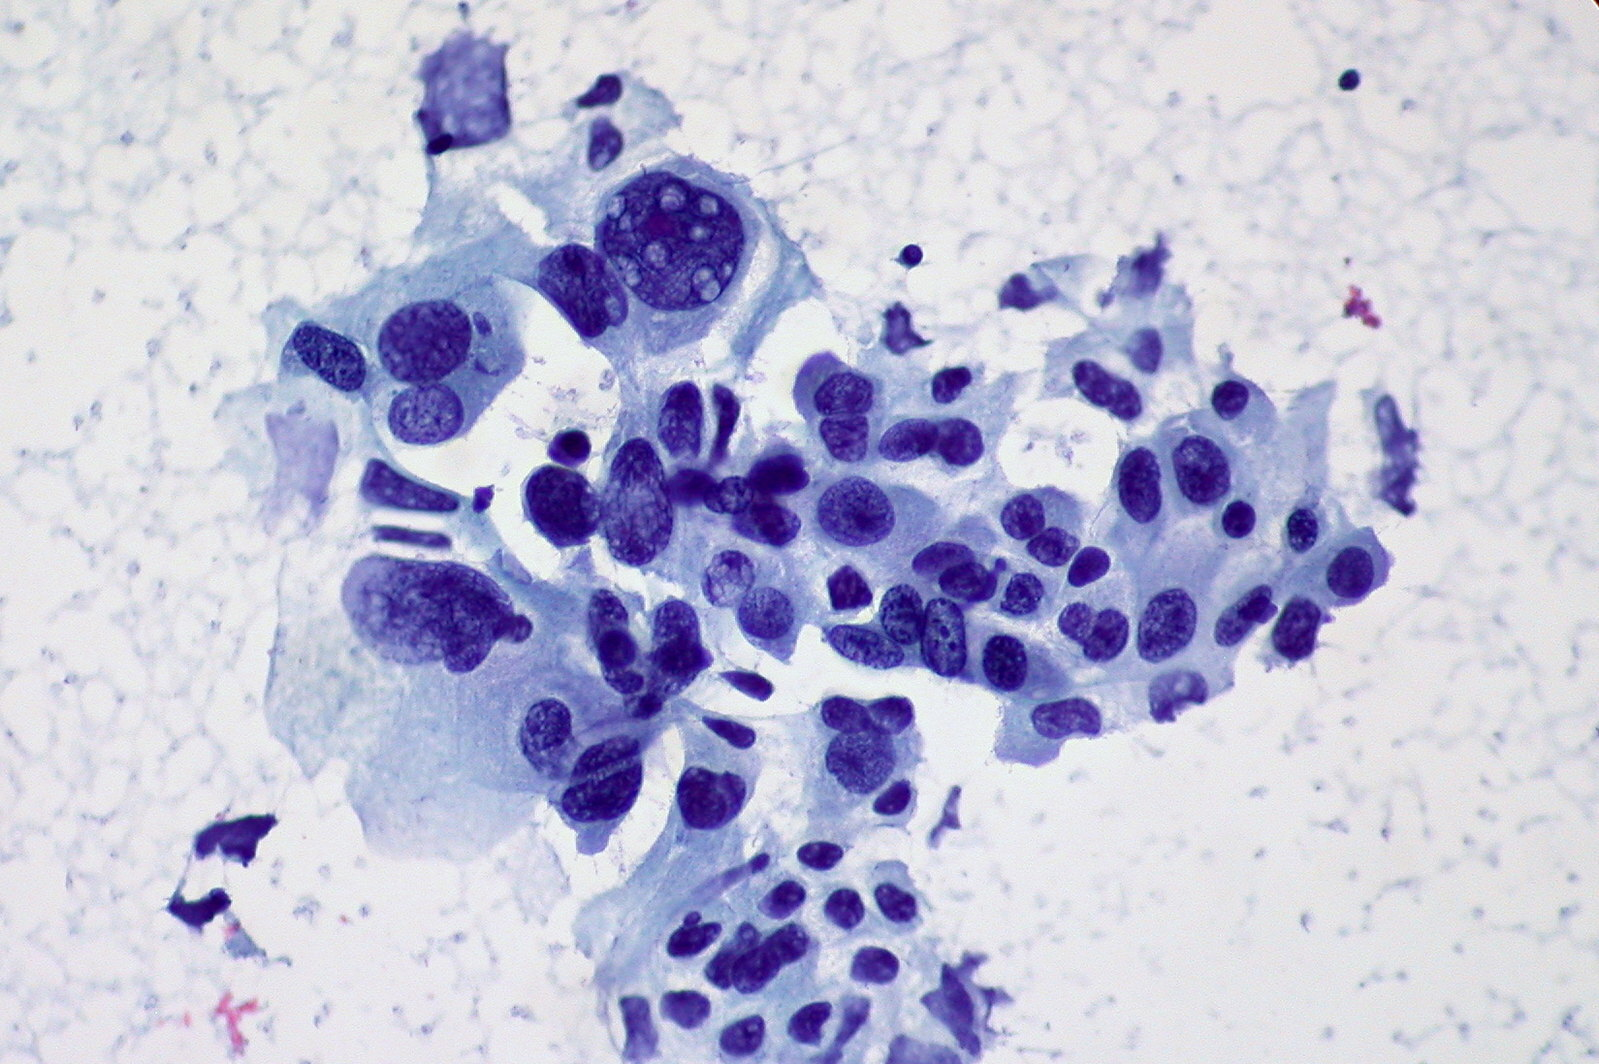 Squamous cell carcinoma on histology